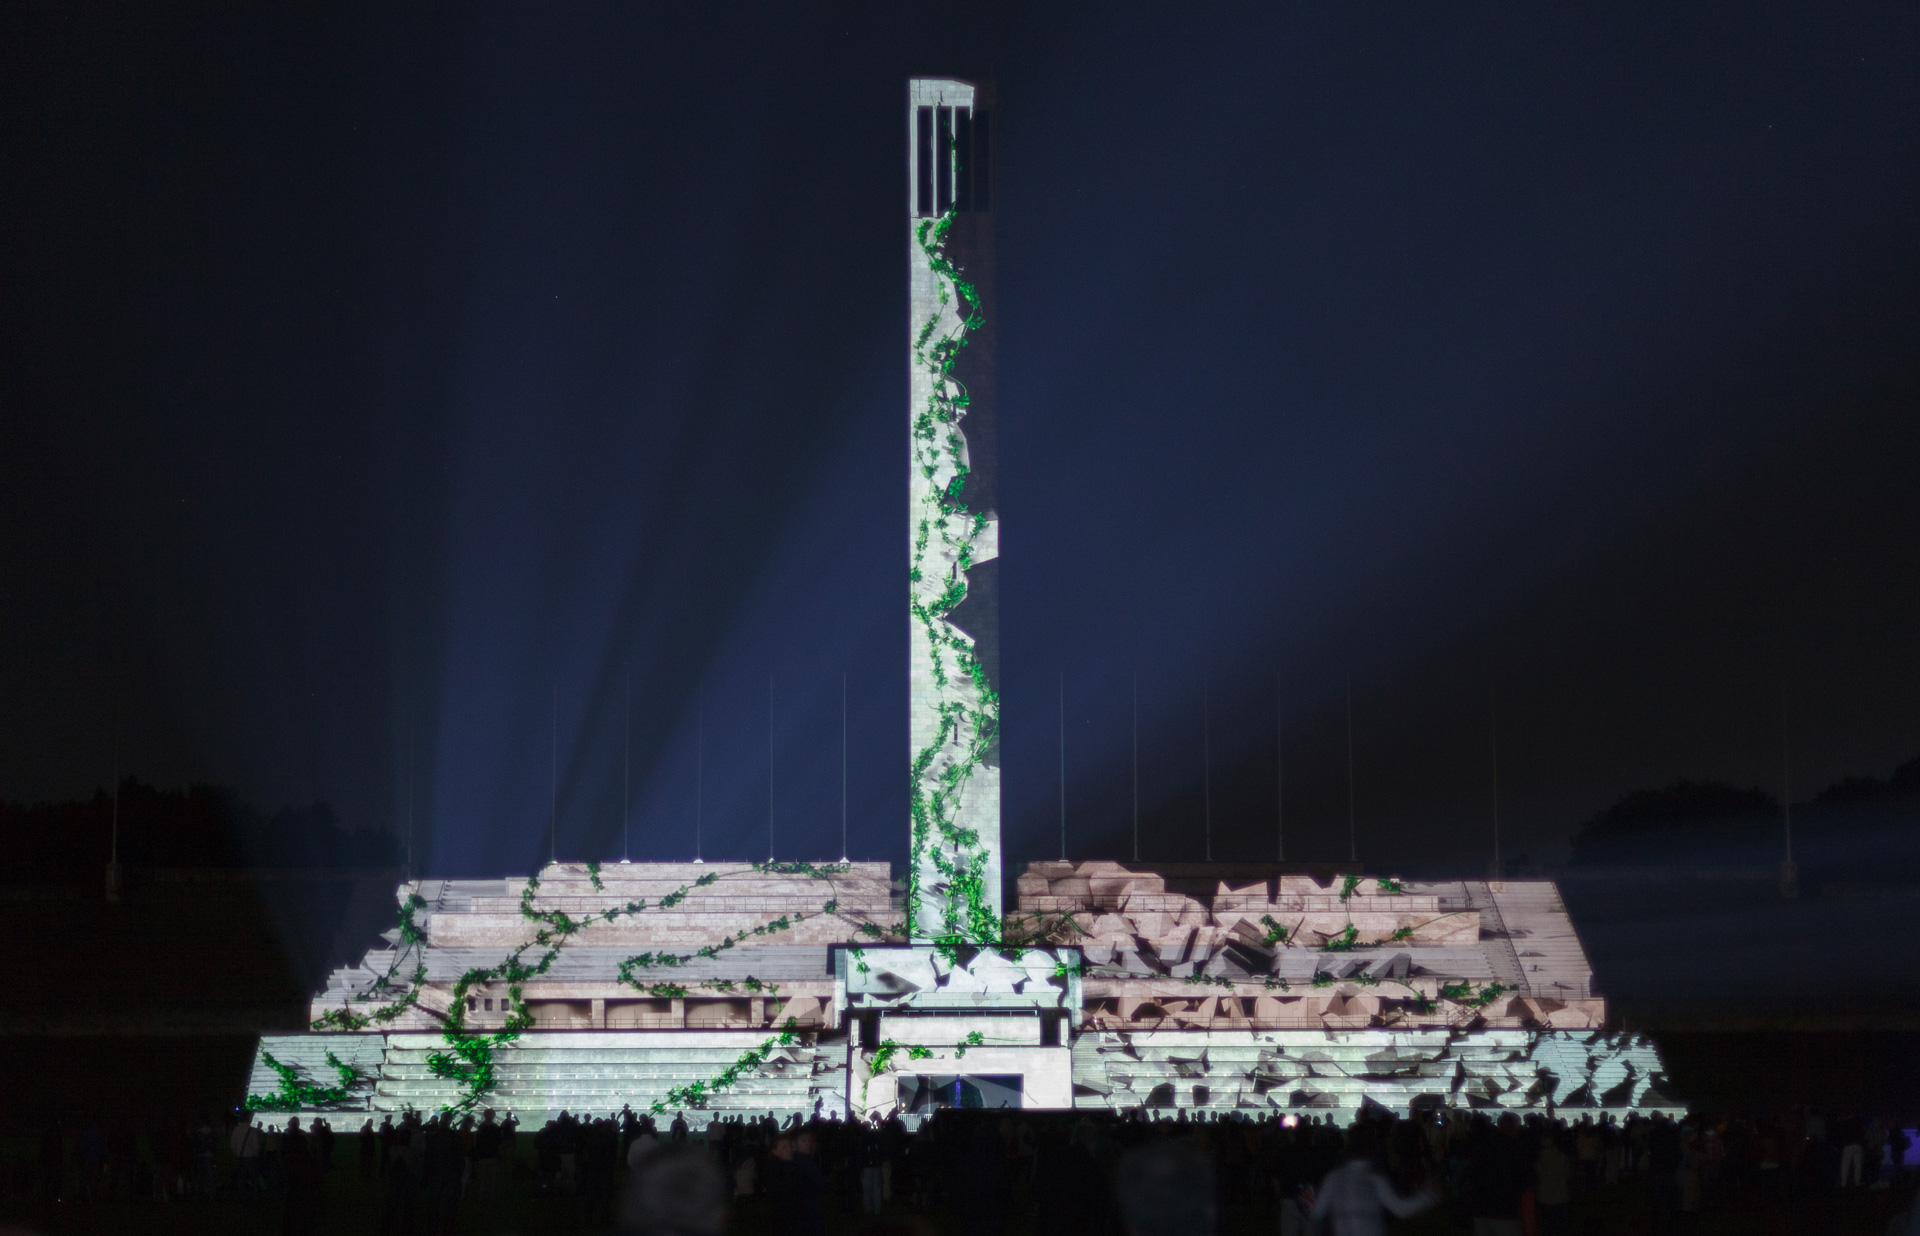 Intel 3D Tour - Projection Mapping - Berlin Turm